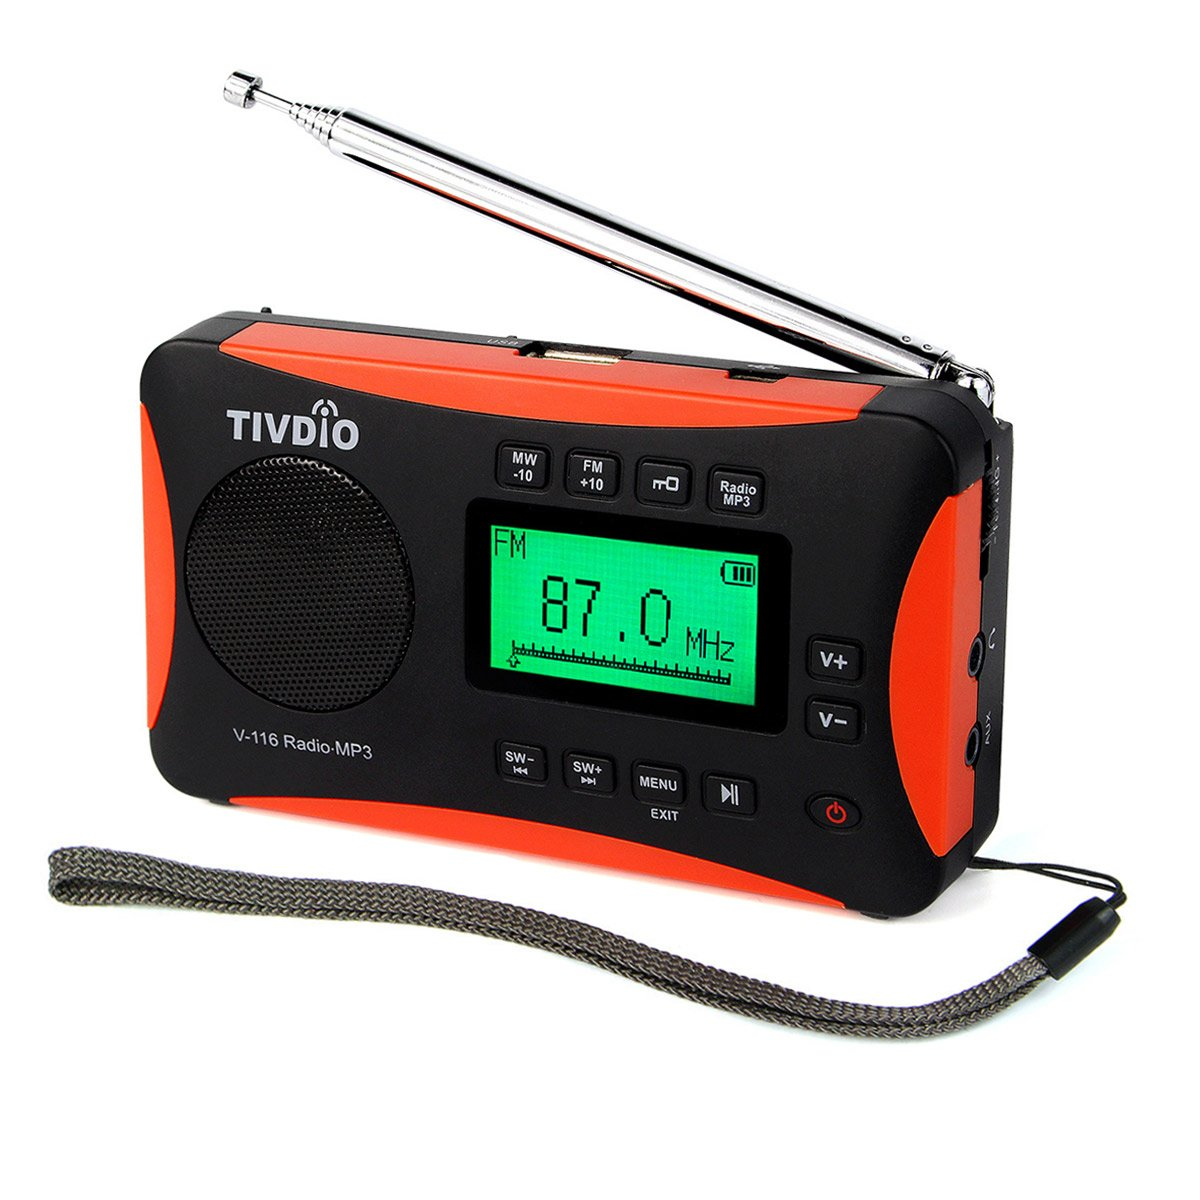 TIVDIO V-116 Portable Shortwave Transistor Radio with AM FM Support SD Card AUX Input MP3 Player Speaker Alarm Clock Sleep Timer(Black and Orange)